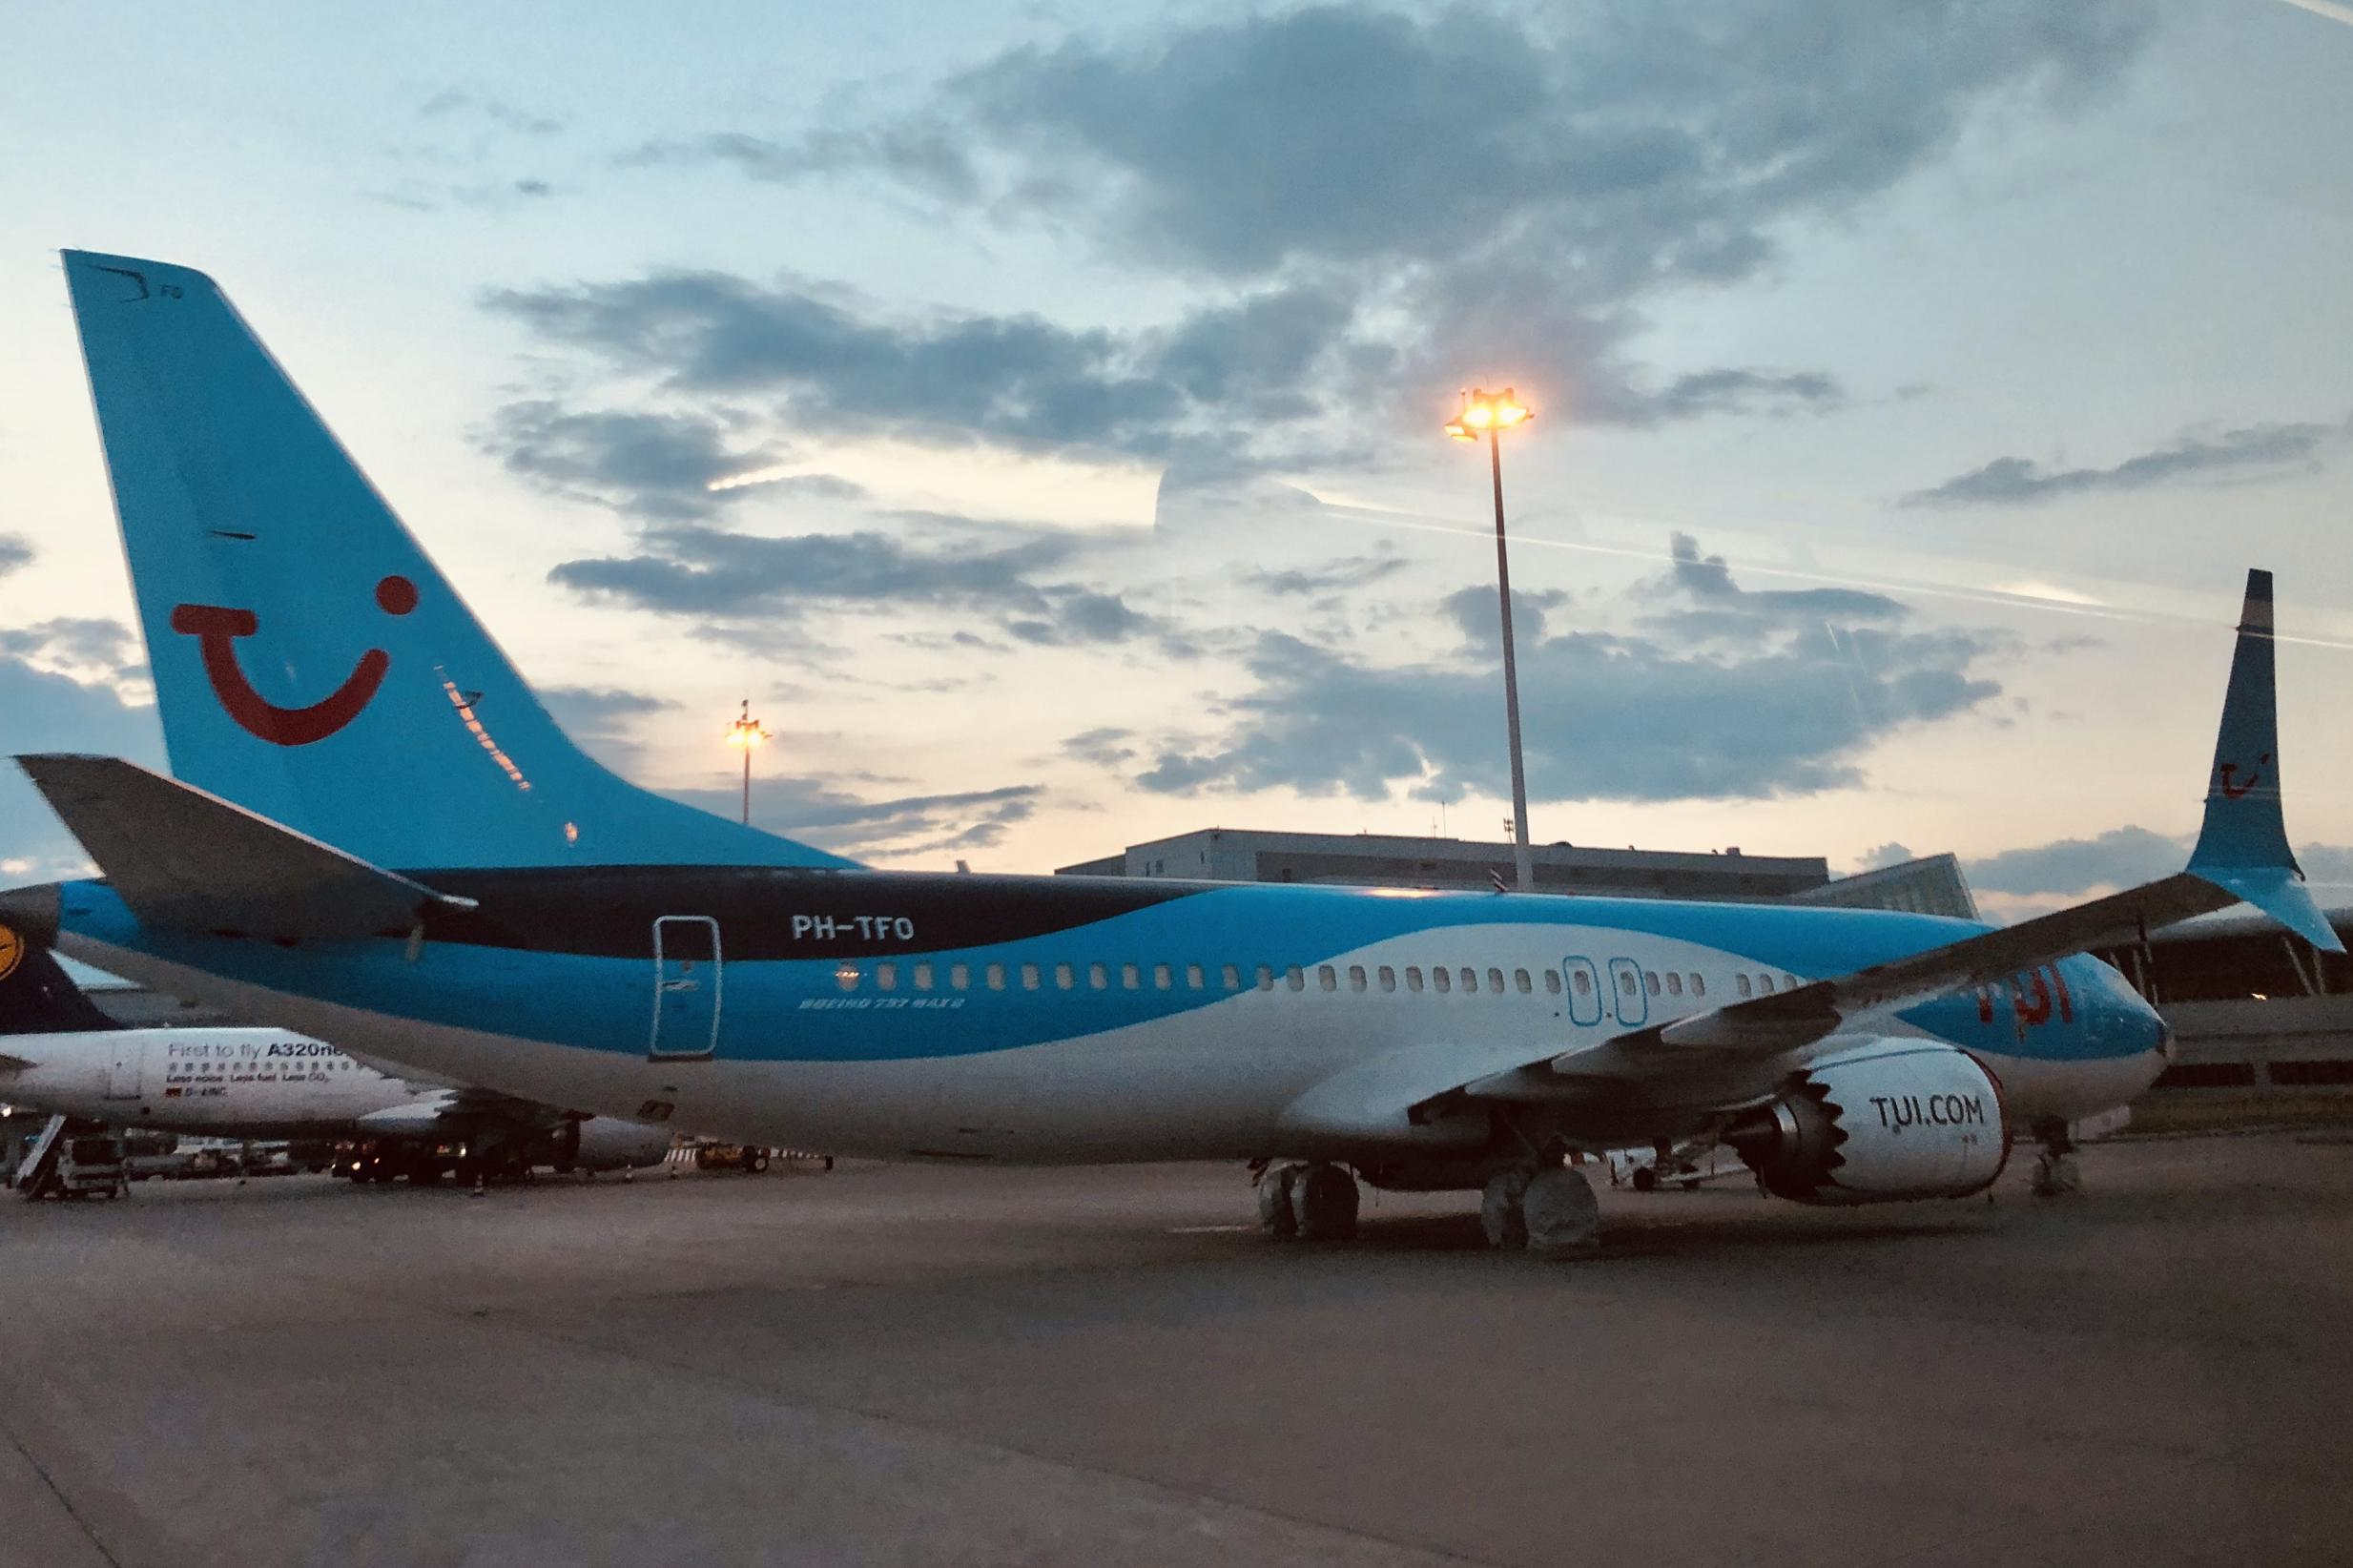 Tui hit by 737 Max grounding and Brexit worries | The